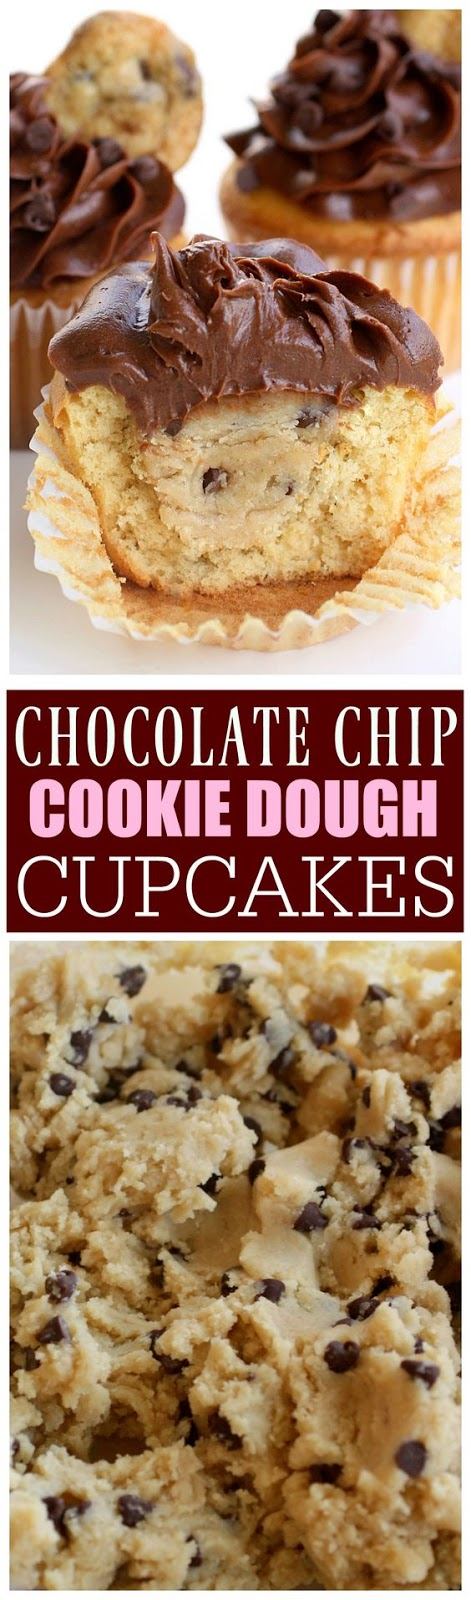 Cookie Dough Stuffed Cupcakes